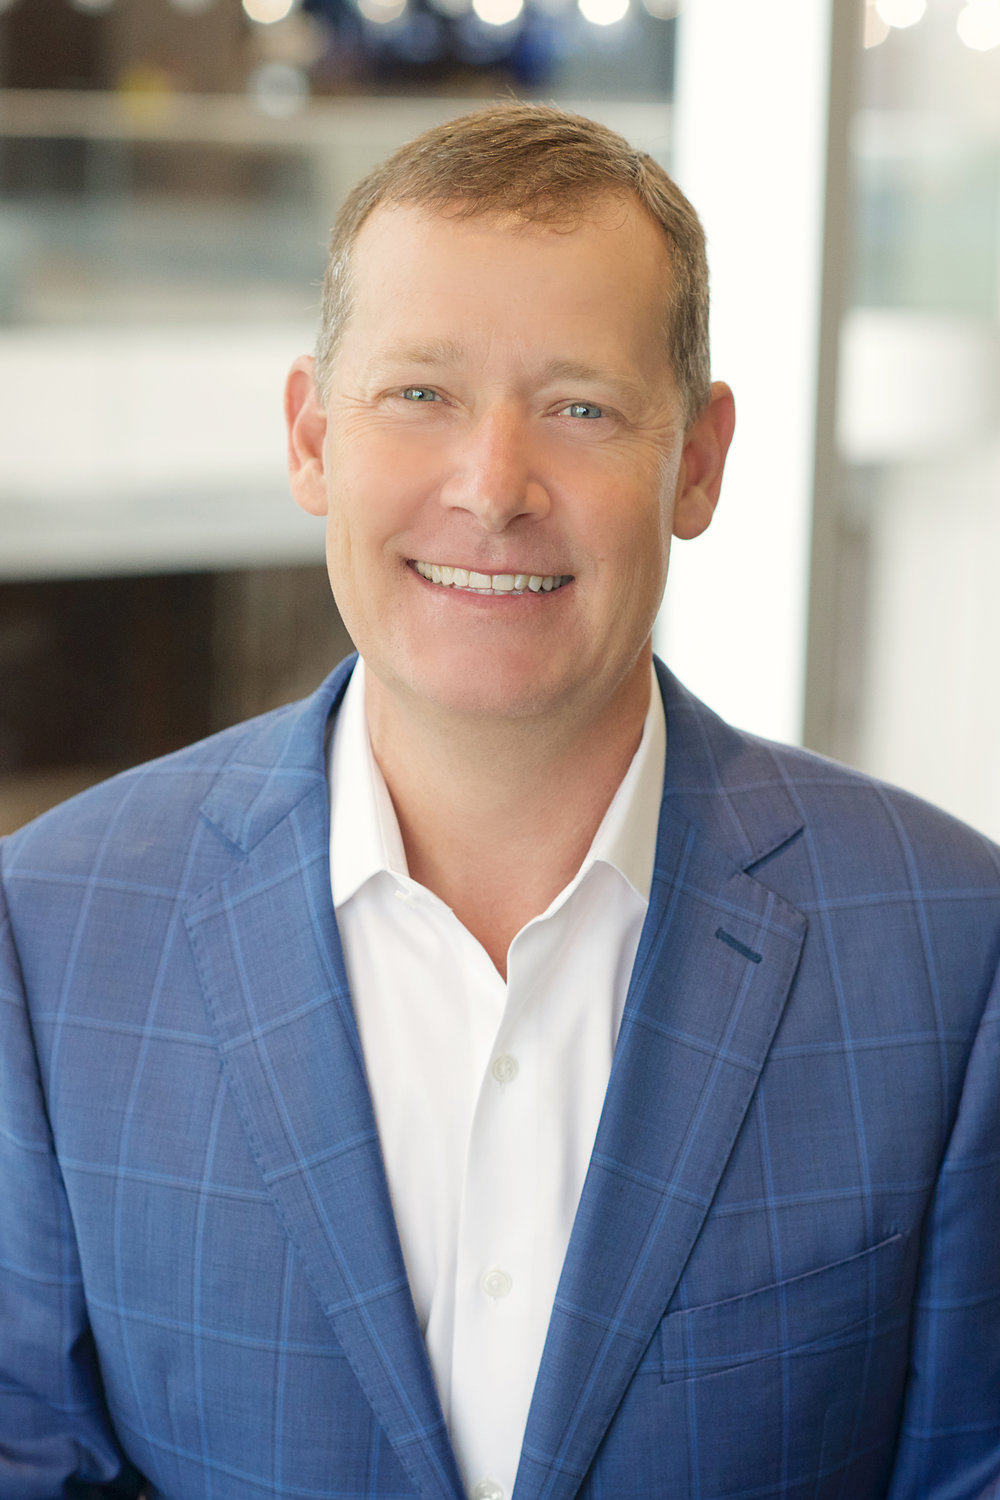 Christopher Crow, MD    Co-Founder & CEO   Nationally recognized healthcare innovator and award-winning primary care physician. Dr. Crow has spent the past 20 years focused on helping communities thrive through improving the delivery of healthcare.